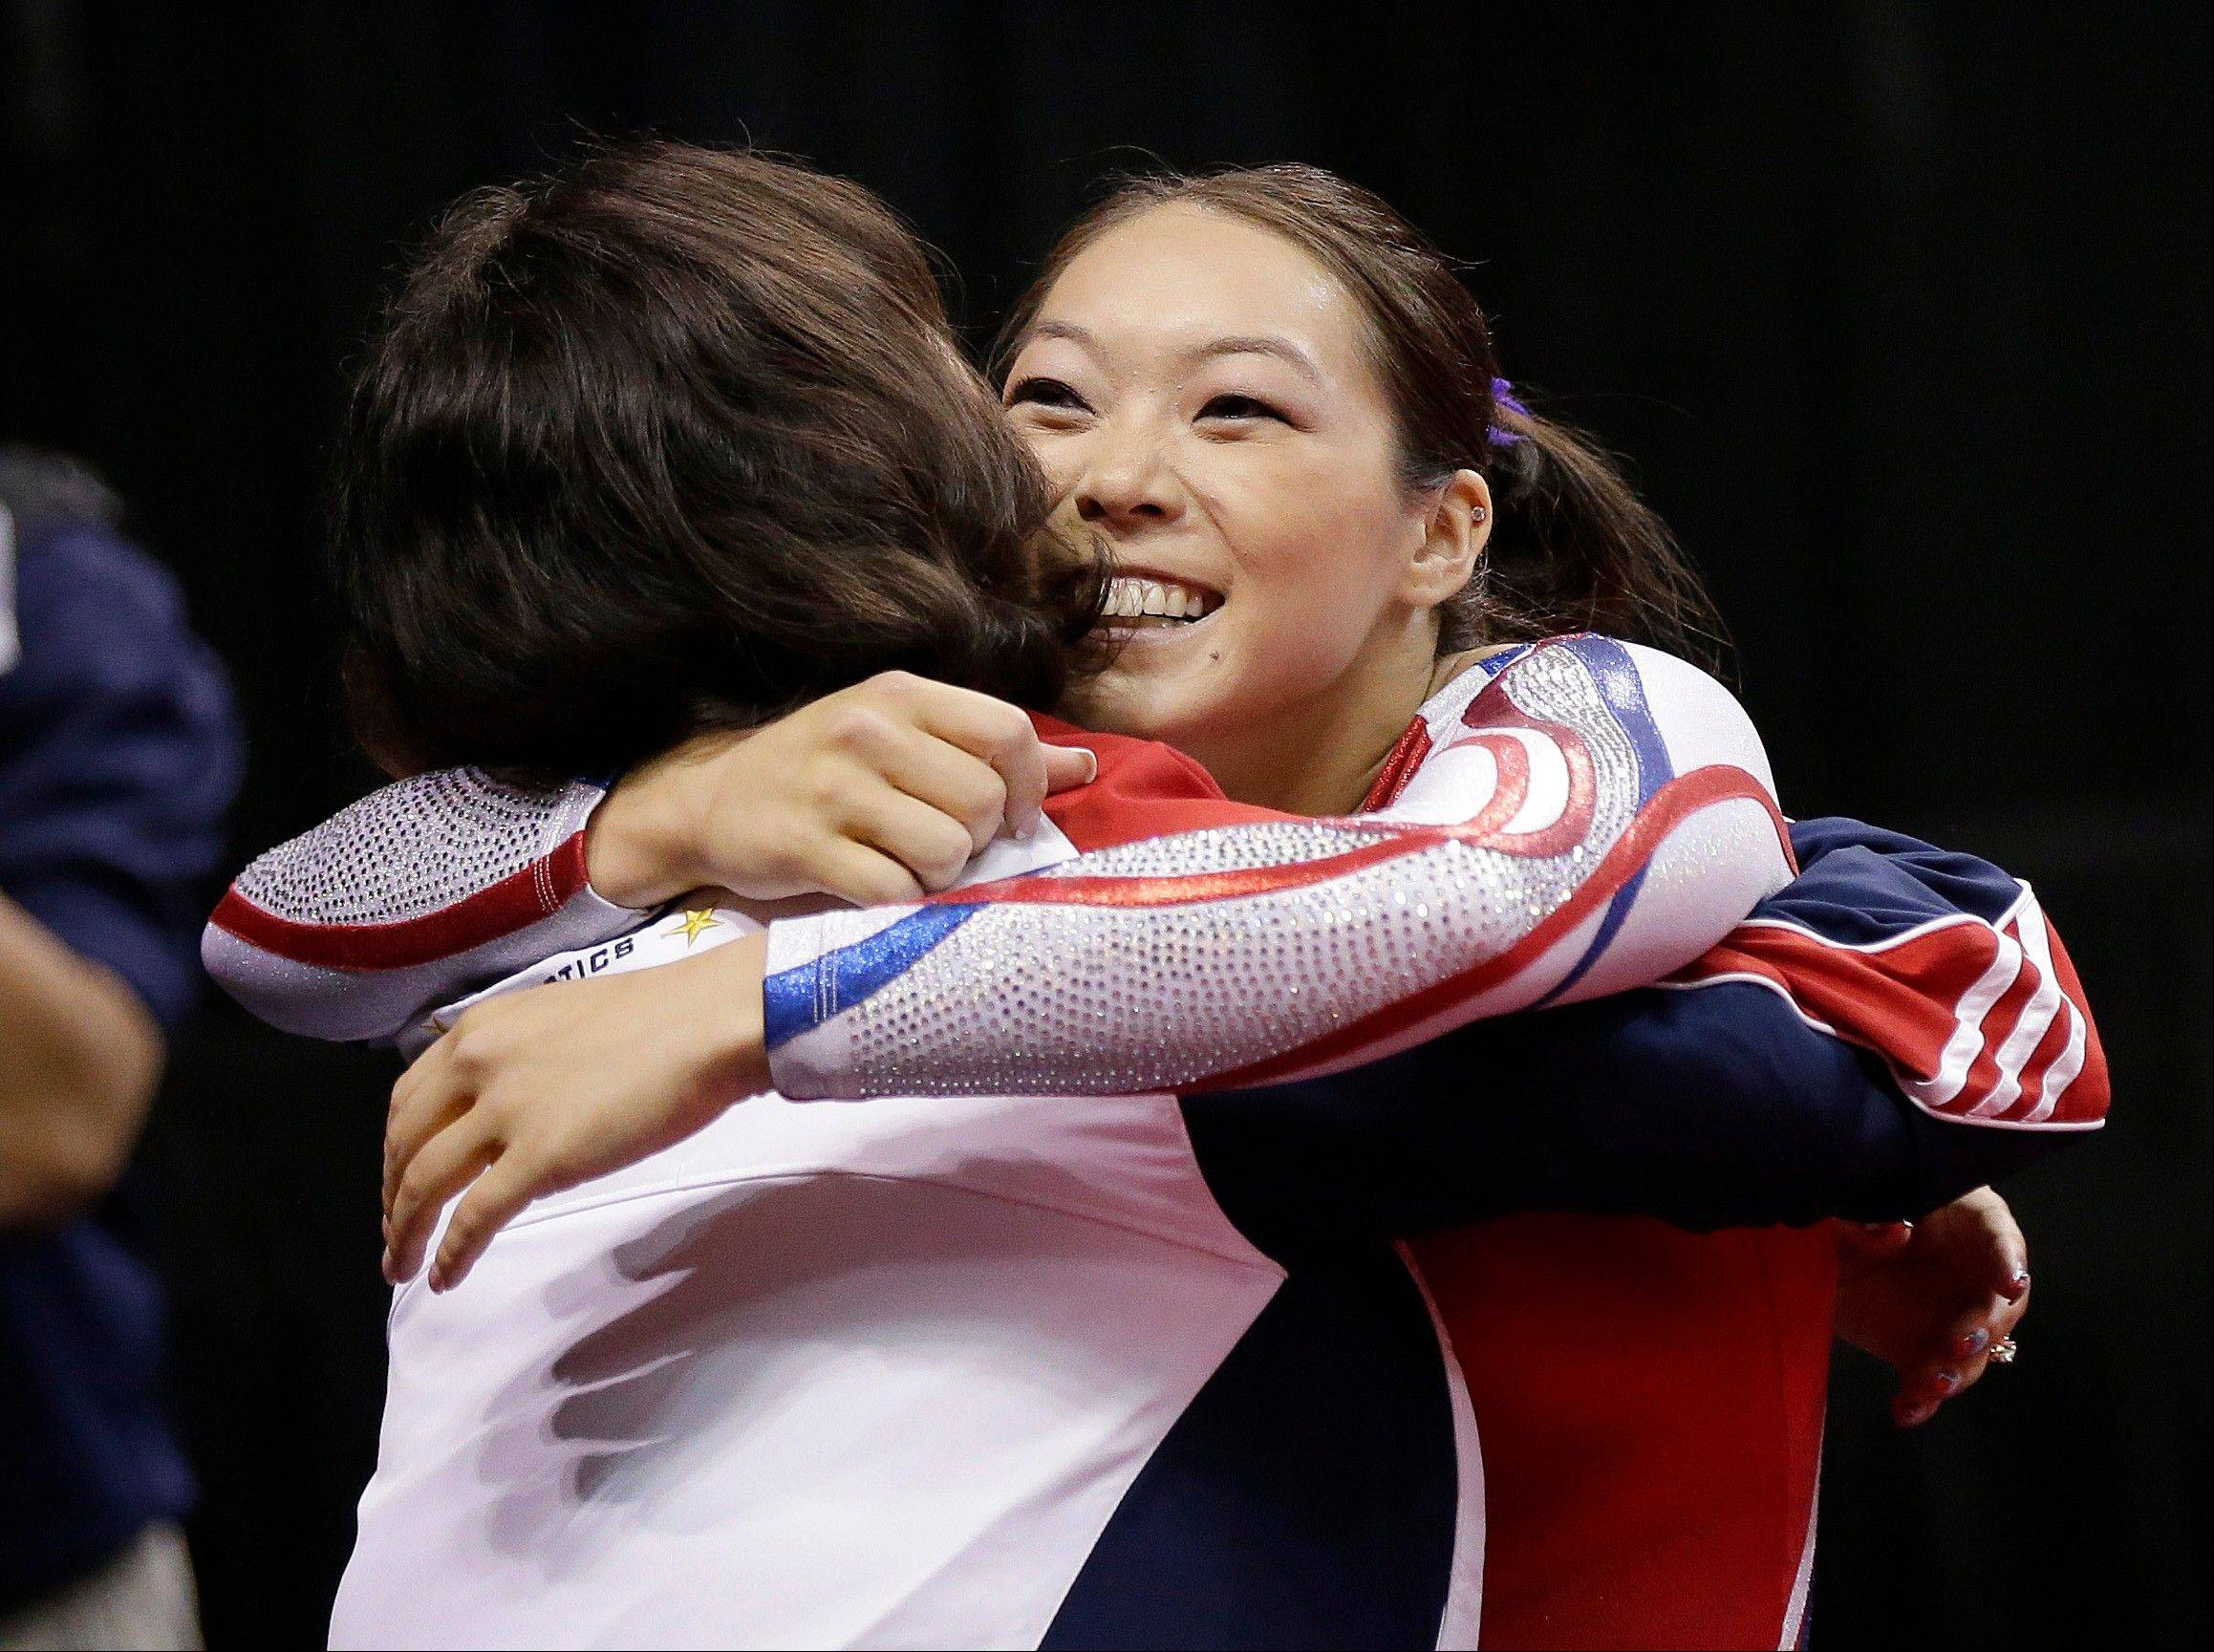 Anna Li of Aurora, who trained at Legacy Elite Gymnastics in Carol Stream, hugs her coach after competing on the balance beam Sunday at the women's Olympic gymnastics trialsin San Jose, Calif. Li, whose specialty is the uneven bars, was named as an alternate to the U.S. Olympic gymnastics team.